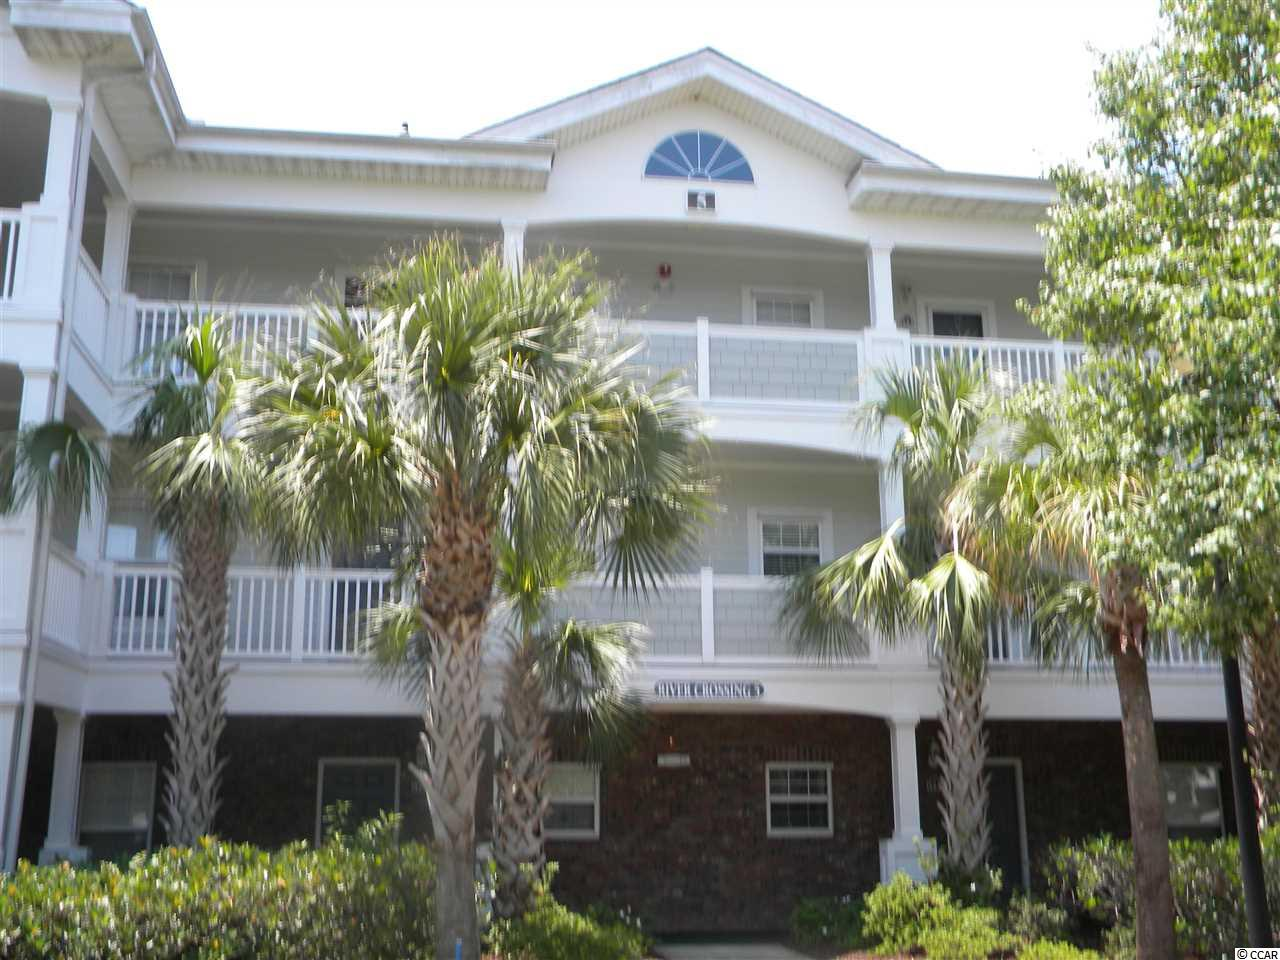 Fully furnished two bedroom, two bath Golf Villa in Barefoot Resort's Rivers Crossing community. This is an end unit located on the third floor with cathedral ceilings, lots of natural light and a open floorplan. Barefoot Resorts has great amenities including a private and oceanfront beach cabana and a seasonal shuttle service.